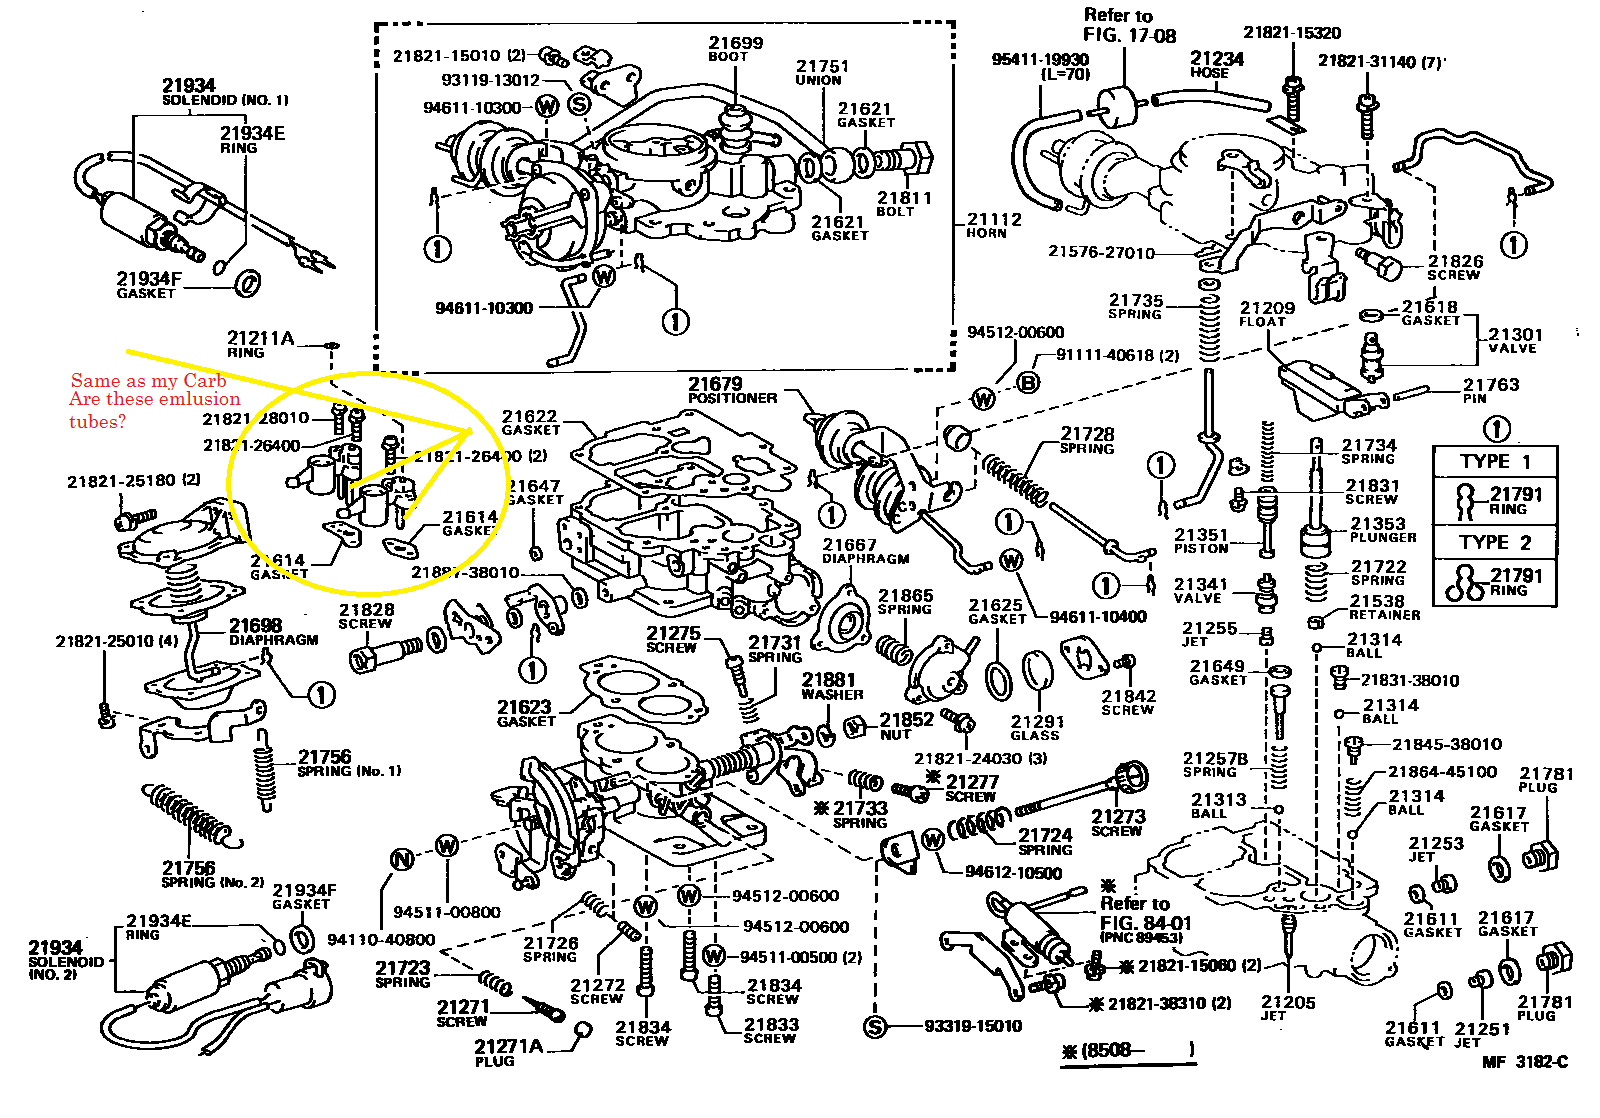 hight resolution of 22r toyota landcruiser my carb schematic png very close to my carb but not sure it is exact match png